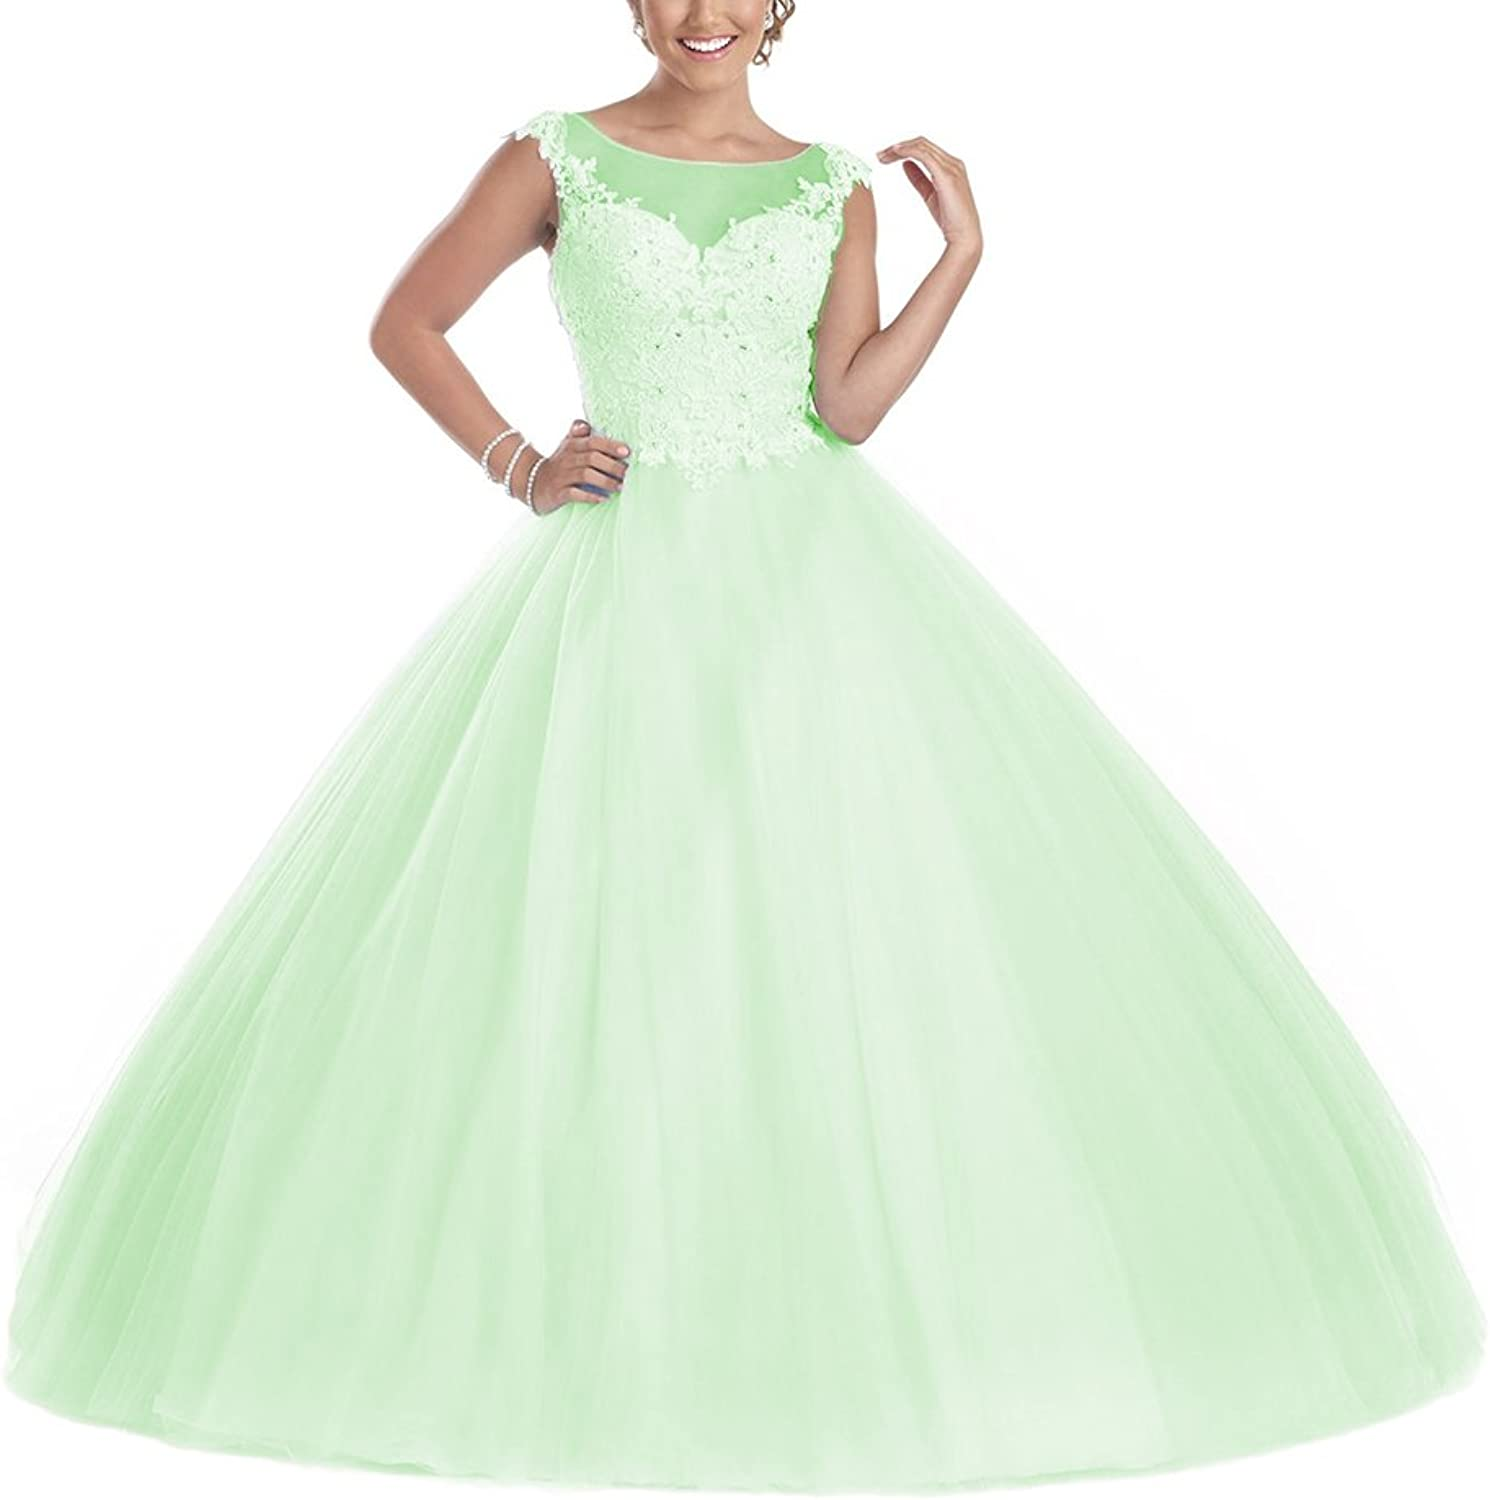 YSMei Women's Cap Sleeves Long Quinceanera Dress Beads Scoop Prom Ball Gown QC75